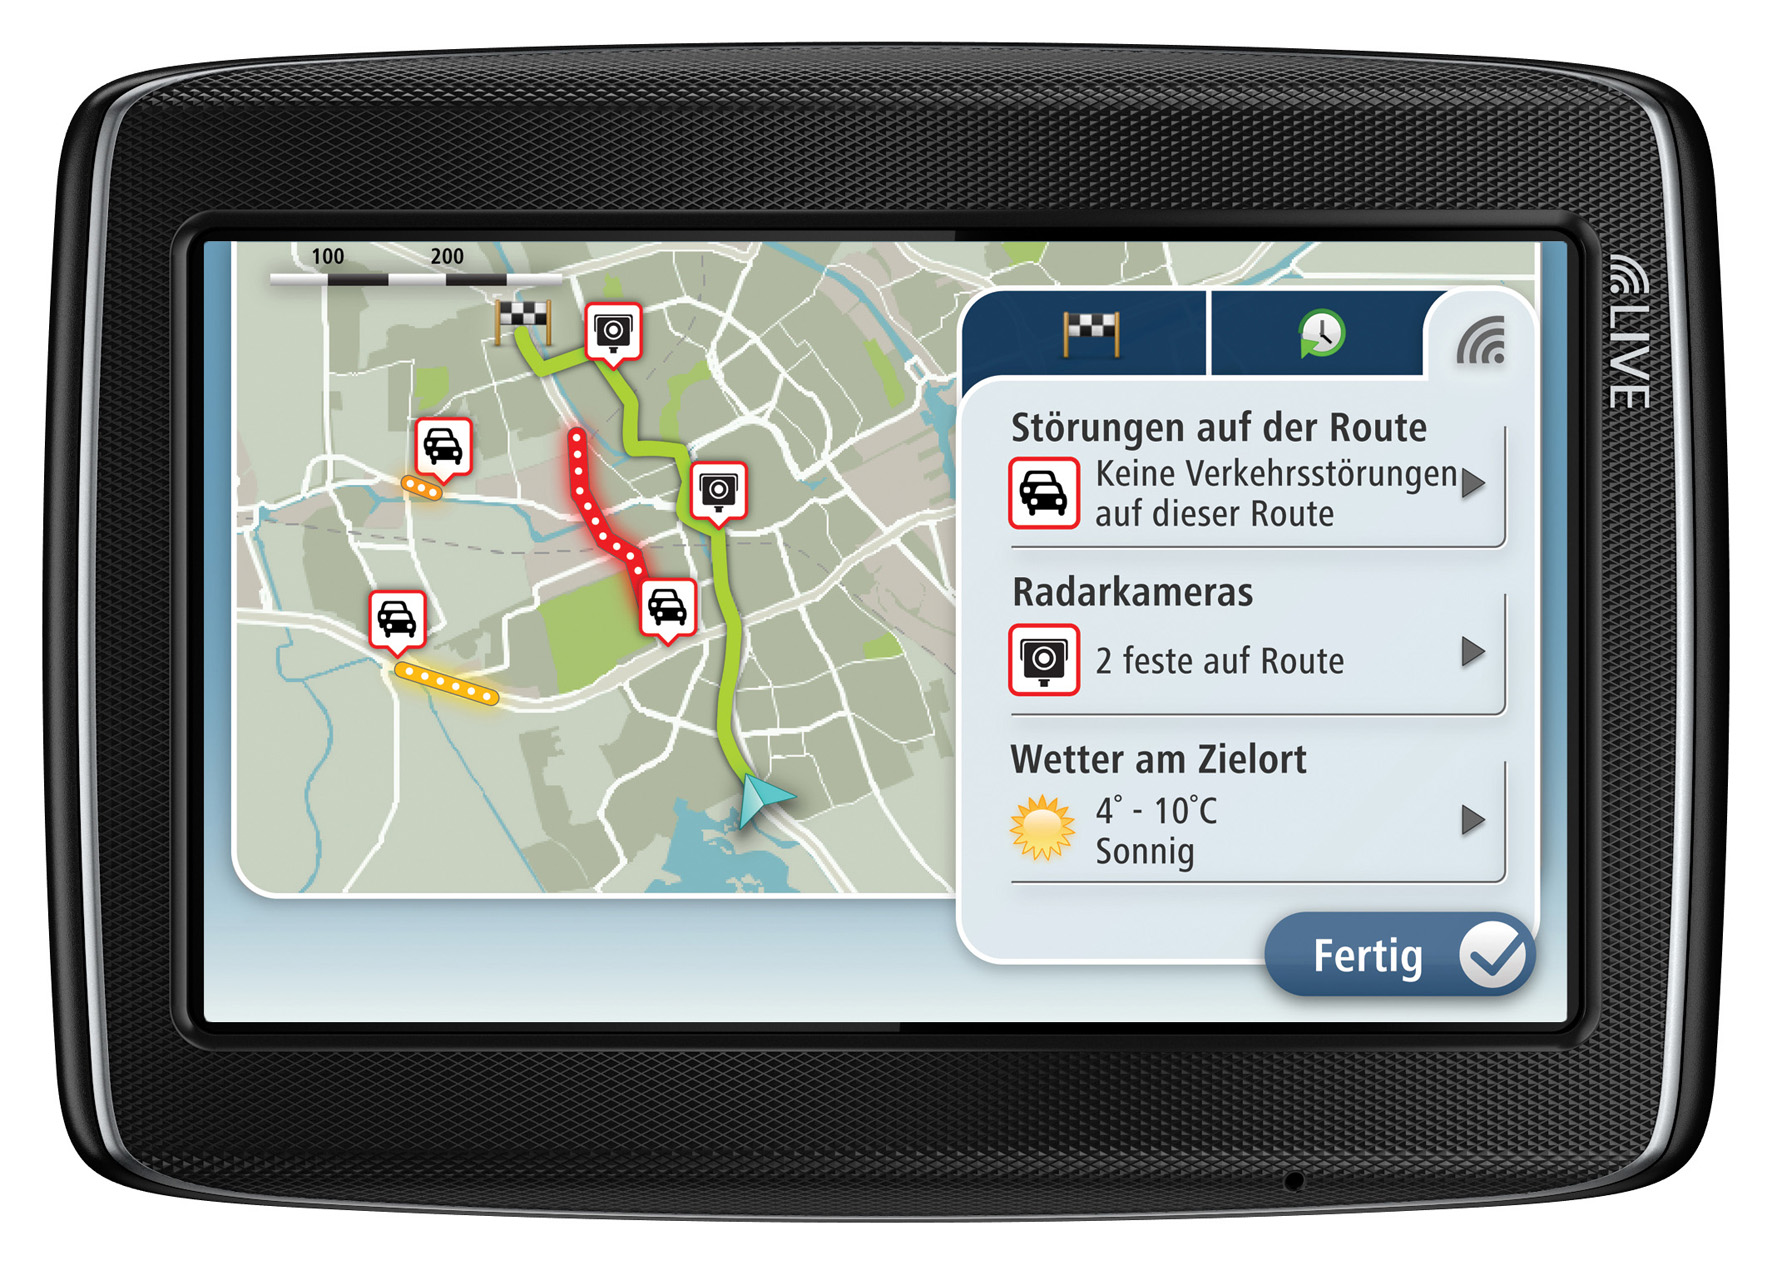 TomTom HD Traffic und die TomTom Search &amp; Go Services sind auch auf dem TomTom GO LIVE 820 erh&#228;ltlich.